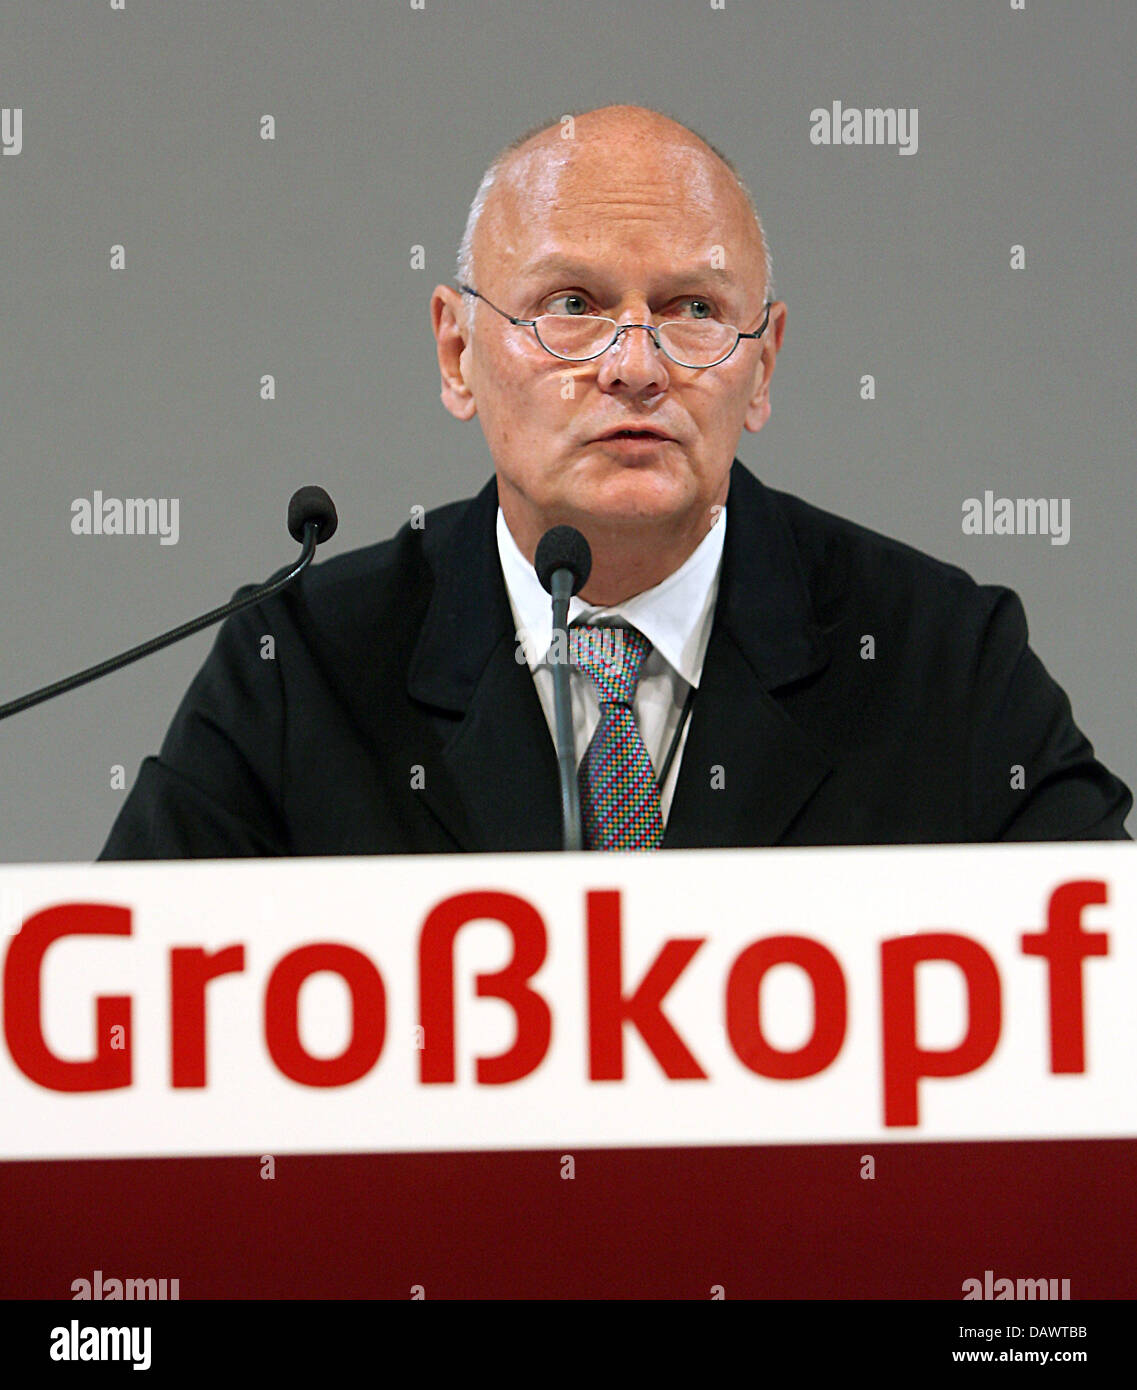 Rainer Grosskopf, pay television network 'Premiere' chairman of the supervisory board, gives a speech during - Stock Image